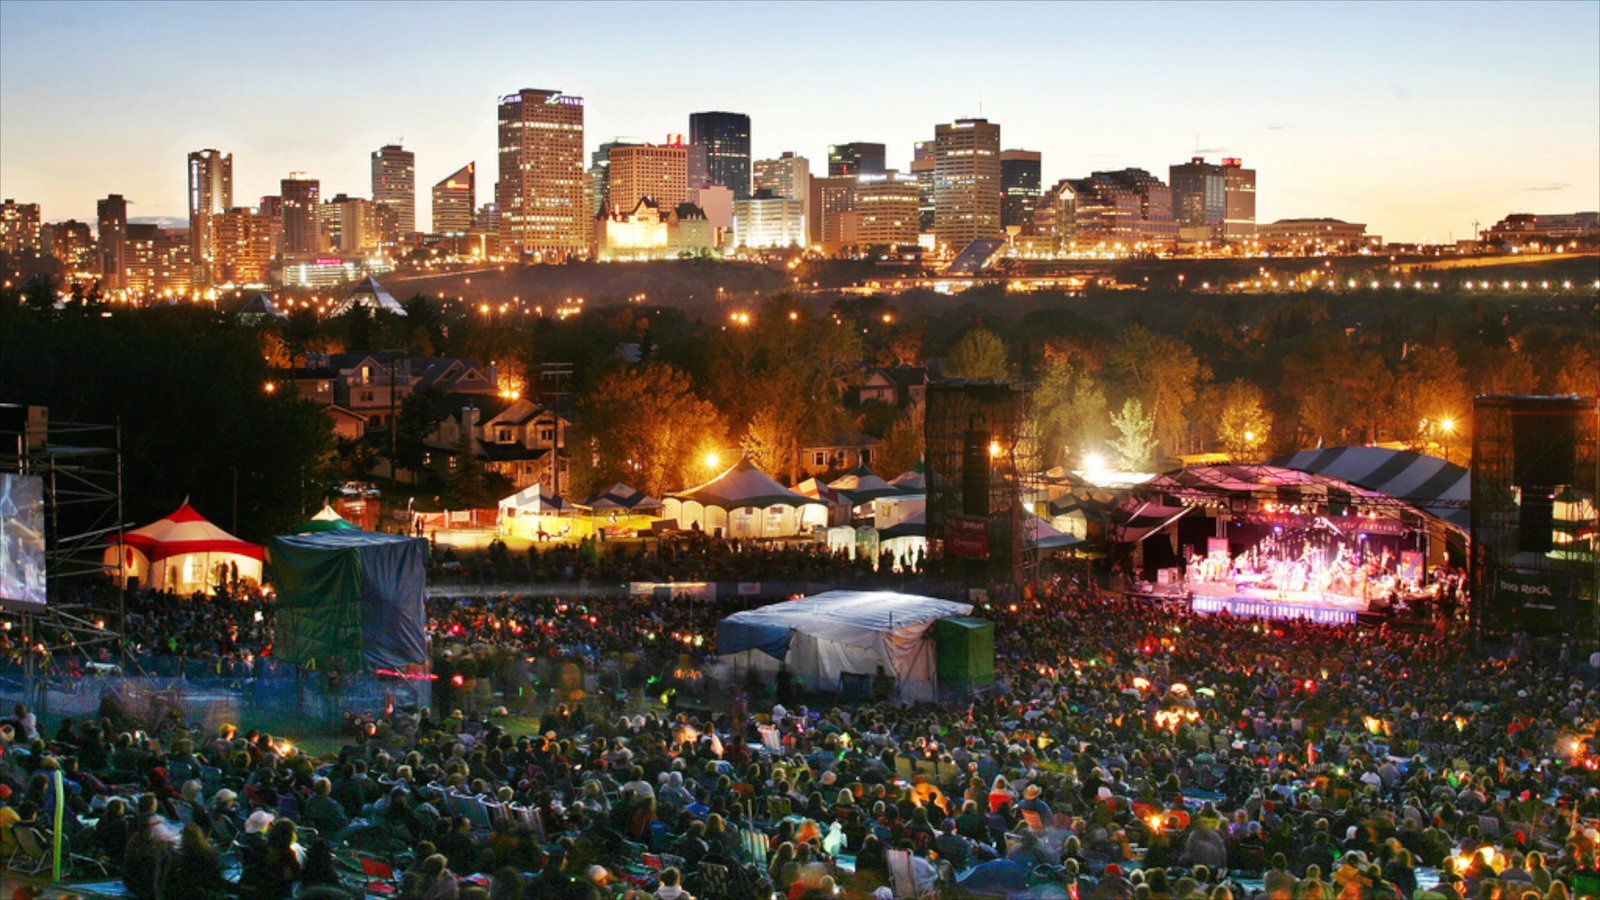 Edmonton showing nightlife, performance art and a sunset